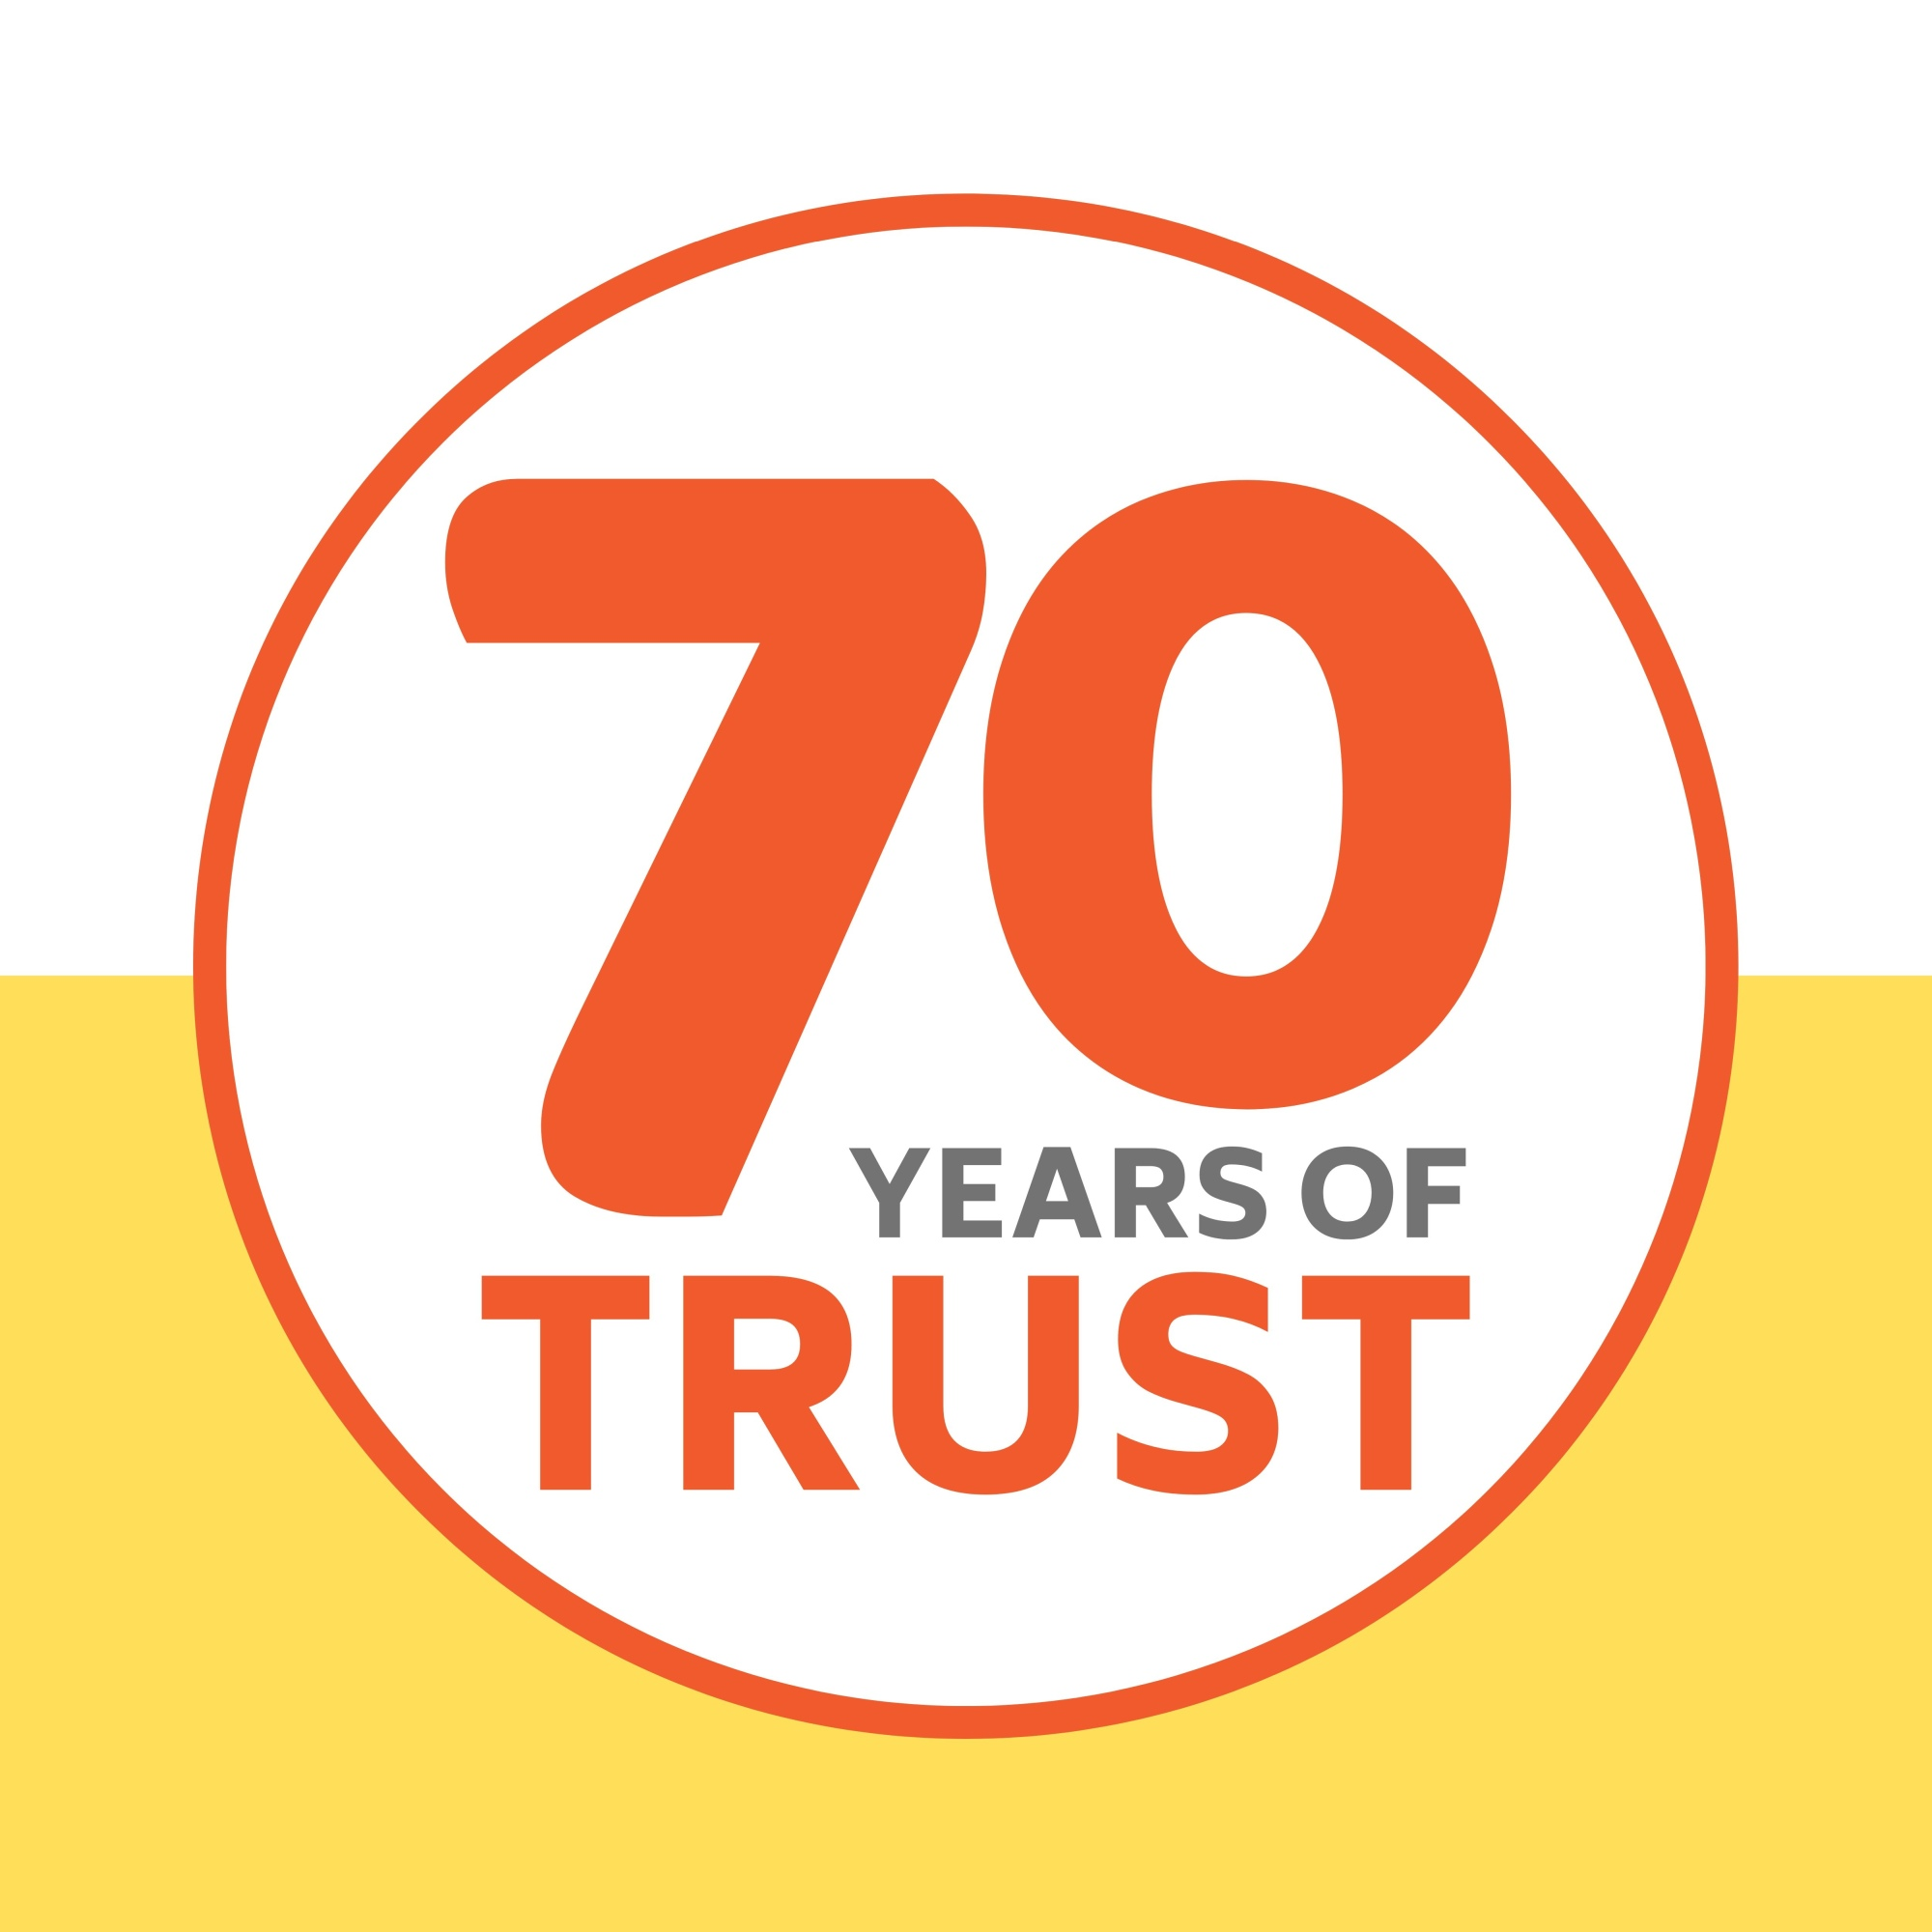 Phondaghat 70 Years Trust